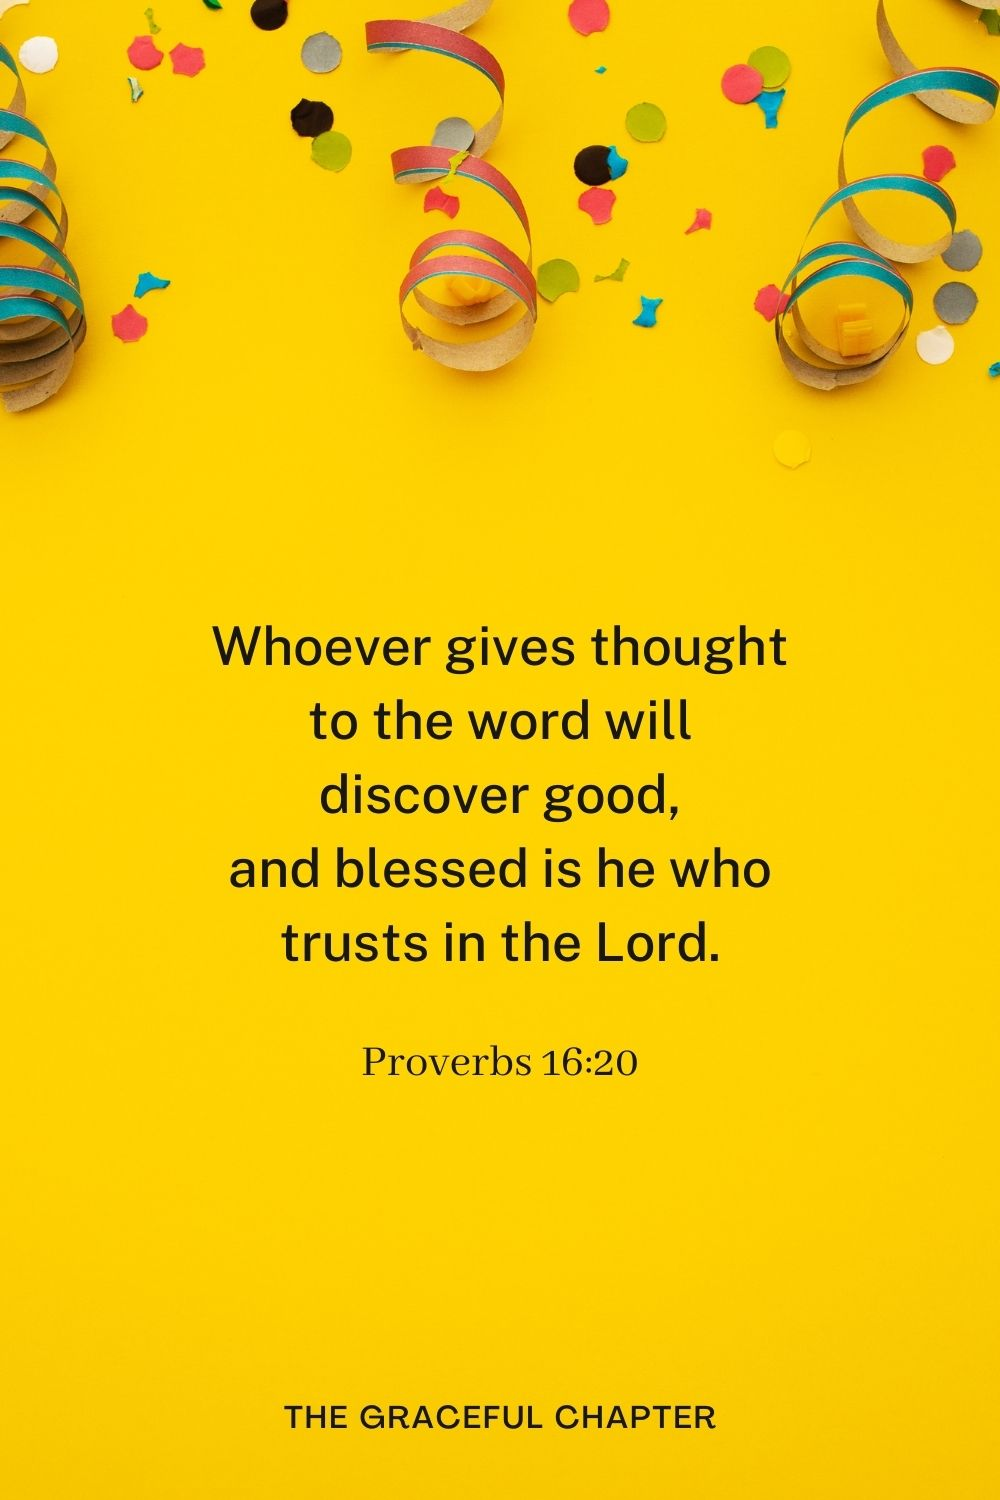 Whoever gives thought to the word will discover good, and blessed is he who trusts in the Lord. Proverbs 16:20